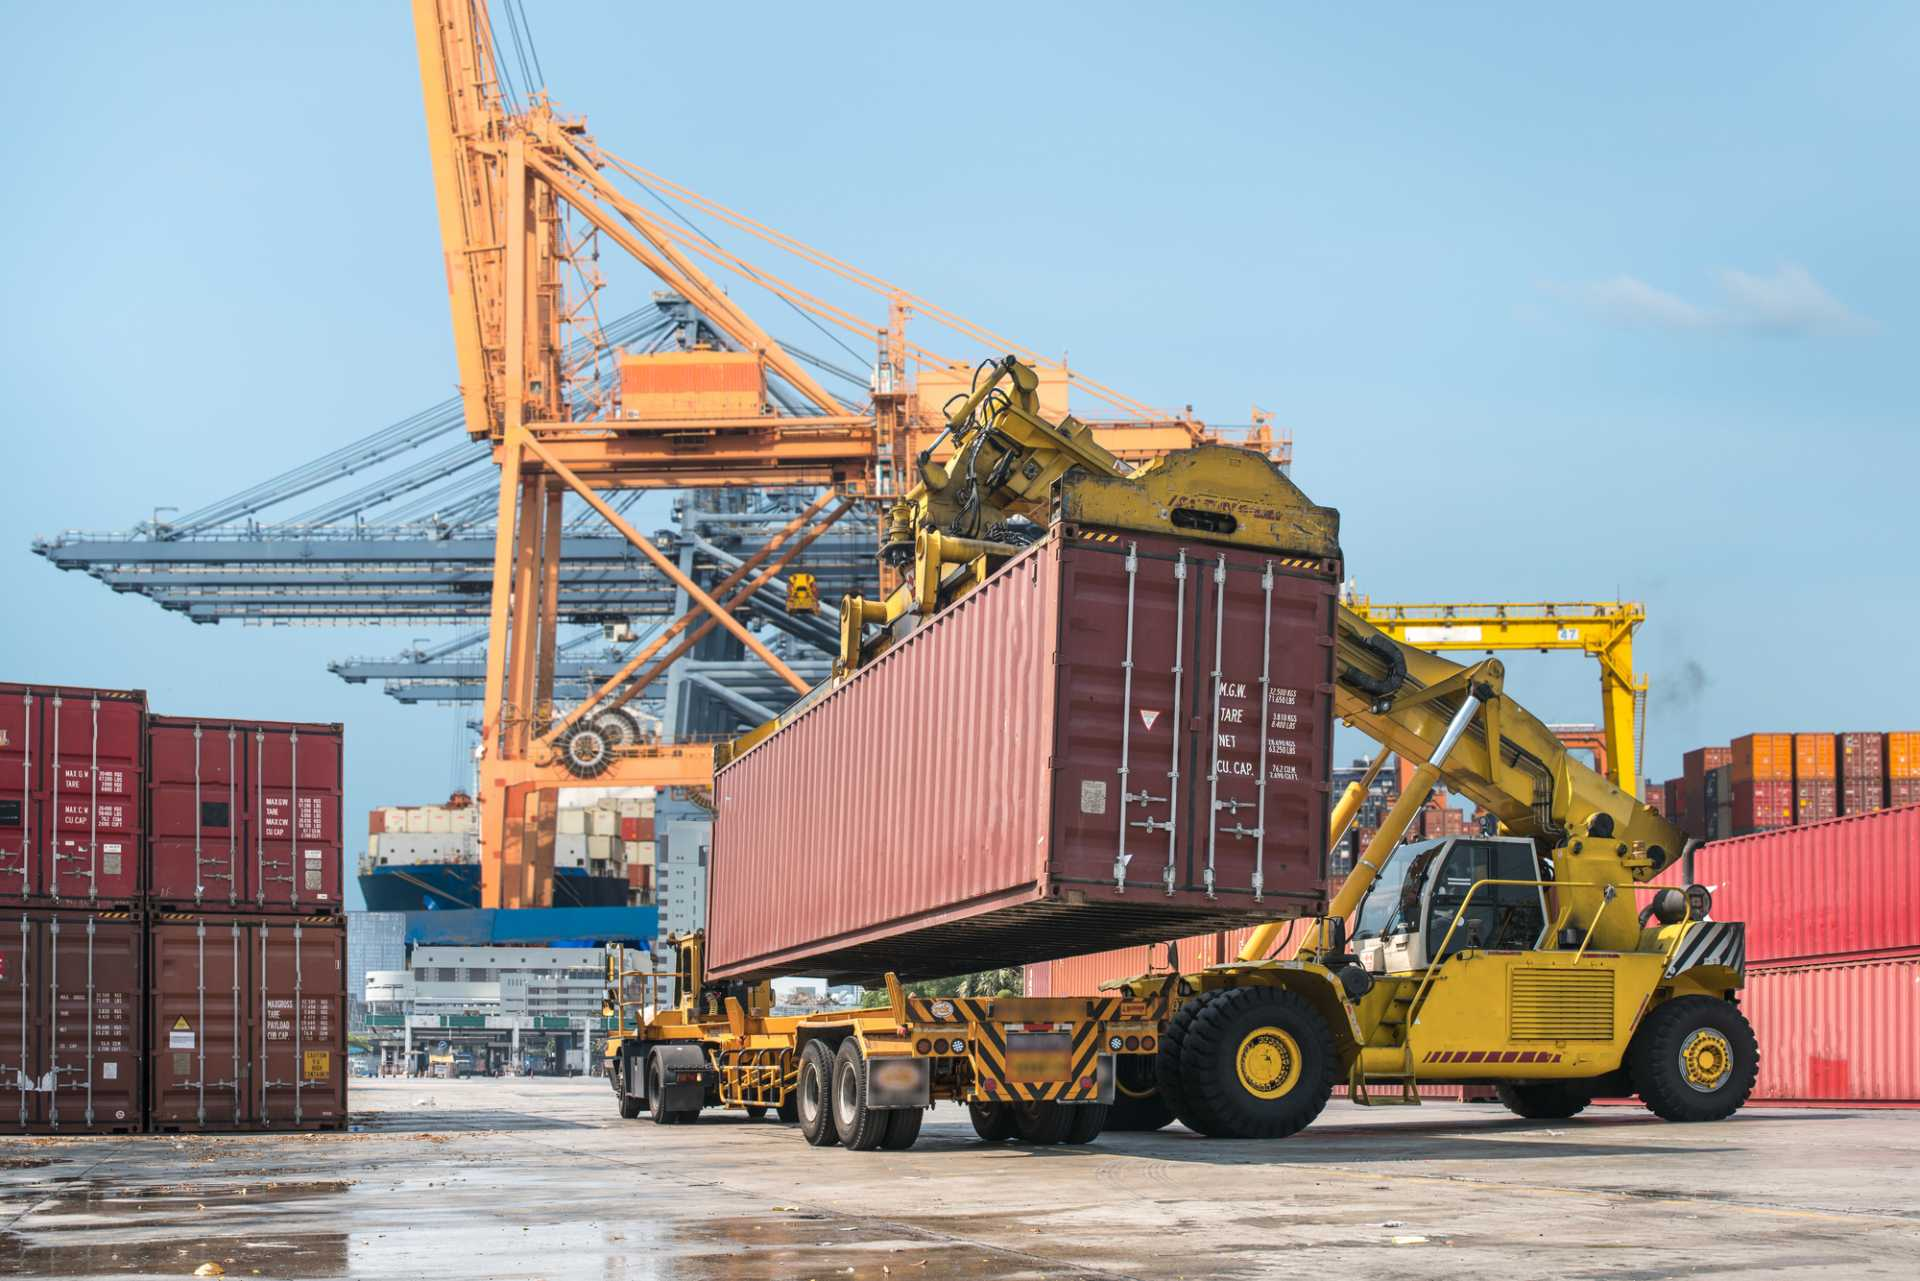 Exports Shipping Crate Forklift Container Port Docks Trade Supply Chain - image courtesy of Depositphotos